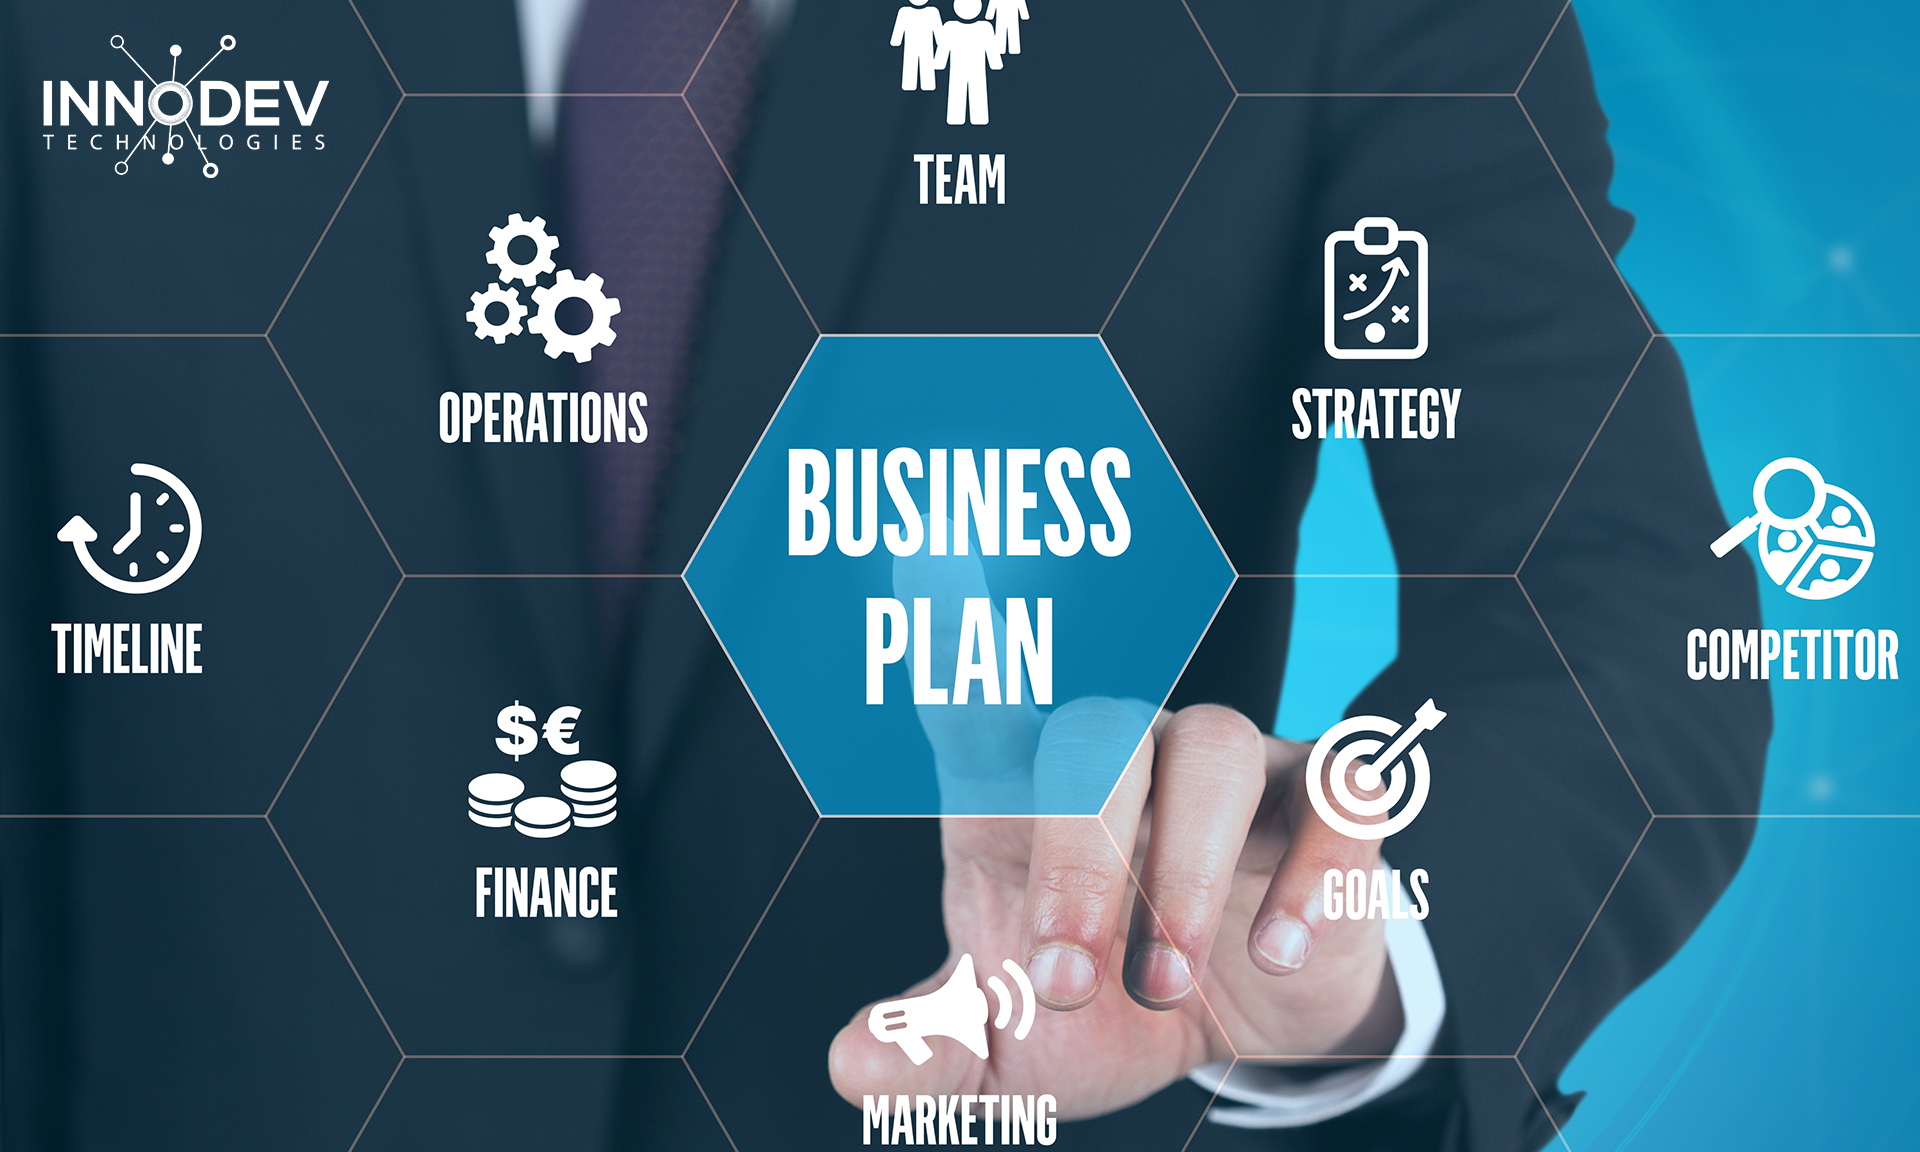 operational plan in a business plan